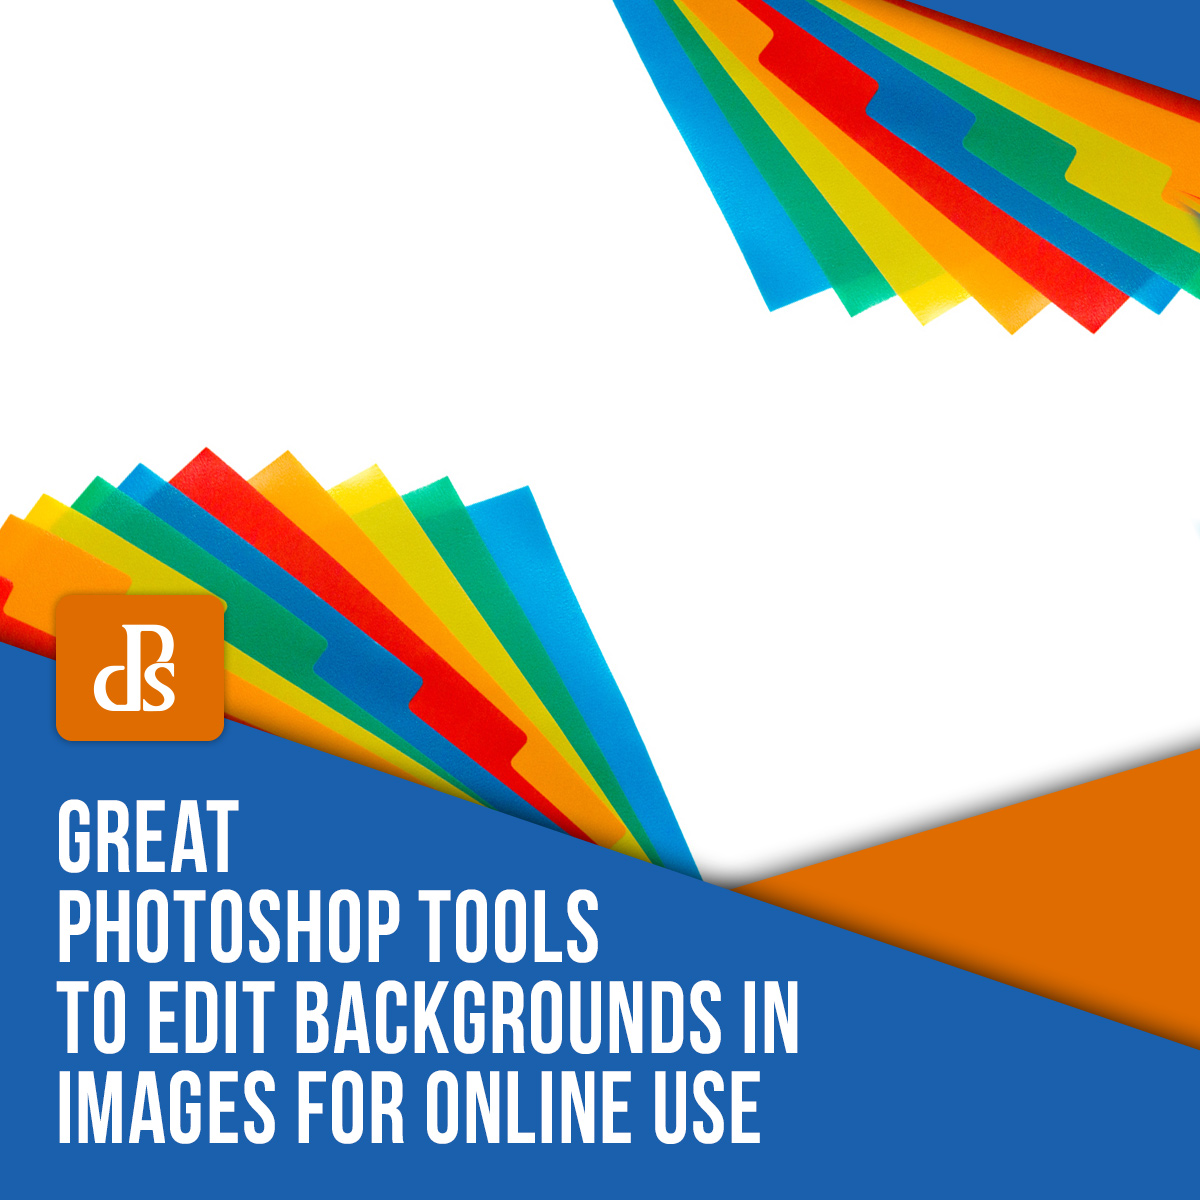 https://i2.wp.com/digital-photography-school.com/wp-content/uploads/2020/06/dps-photoshop-tools-to-edit-backgrounds.jpg?ssl=1